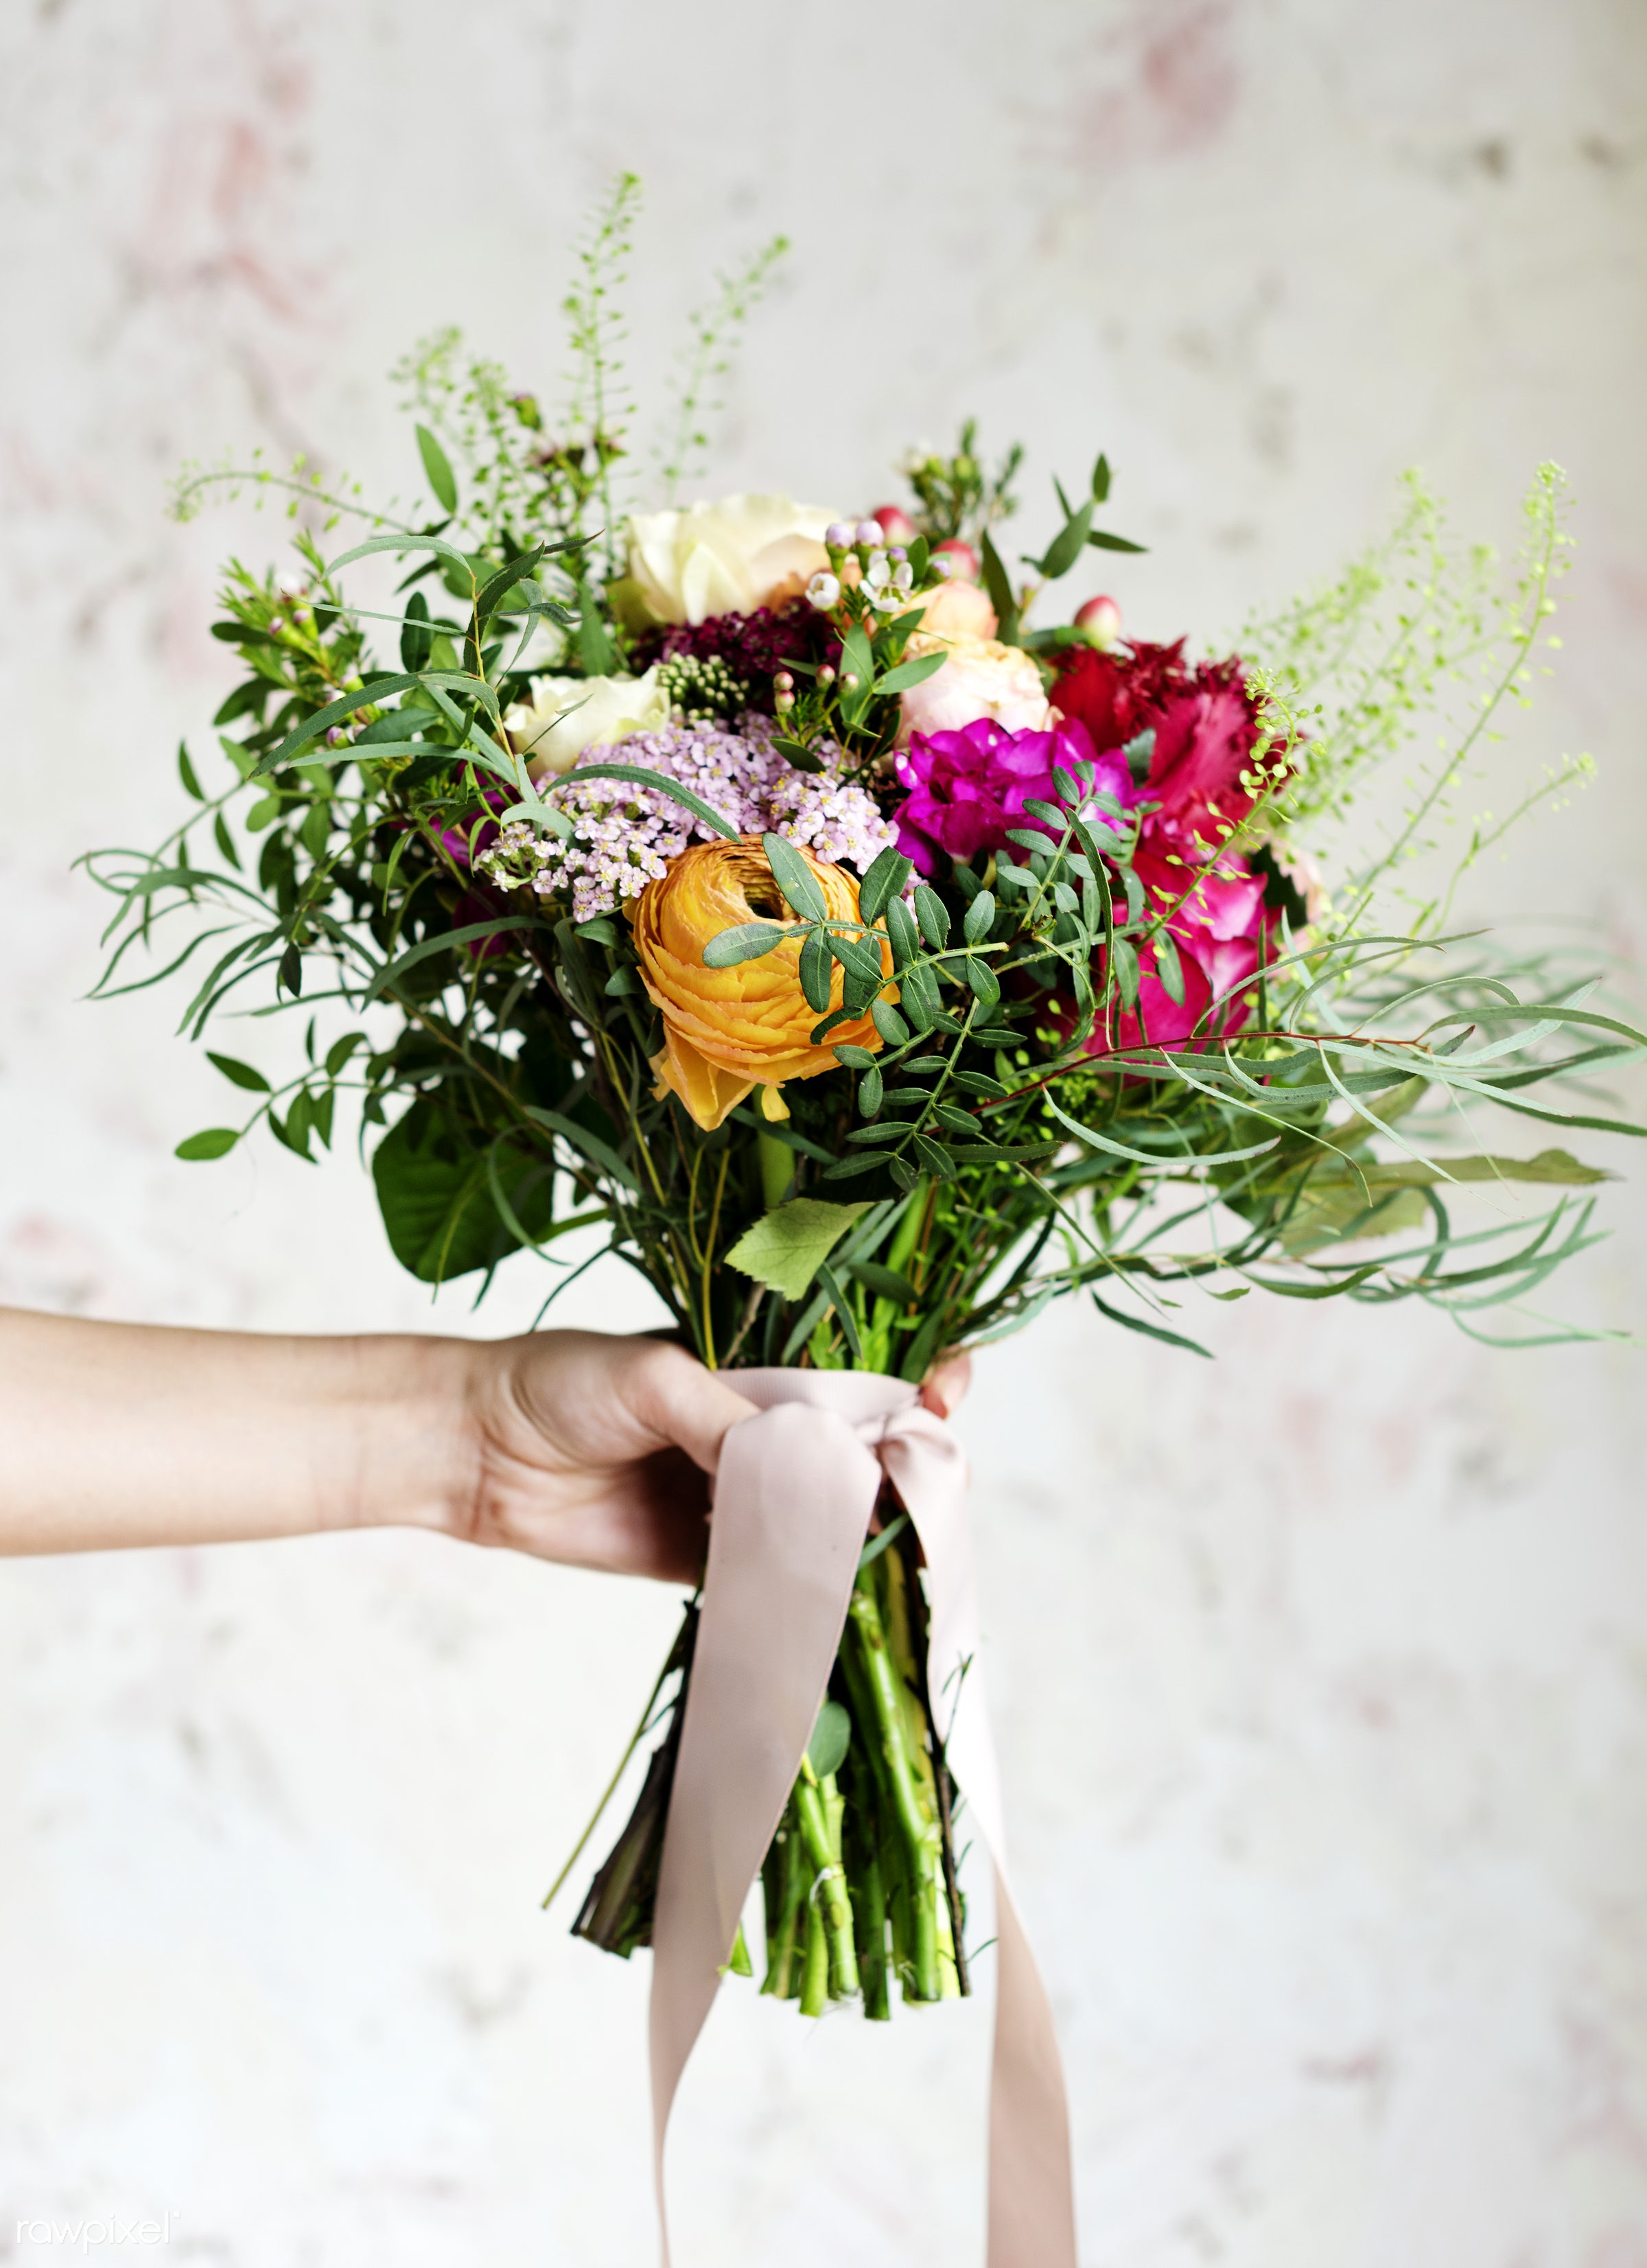 Hand holding beautiful bouquet of flowers - arrangement, beautiful, bouquet, bunch, floral, flowers, fresh, hands, holding,...